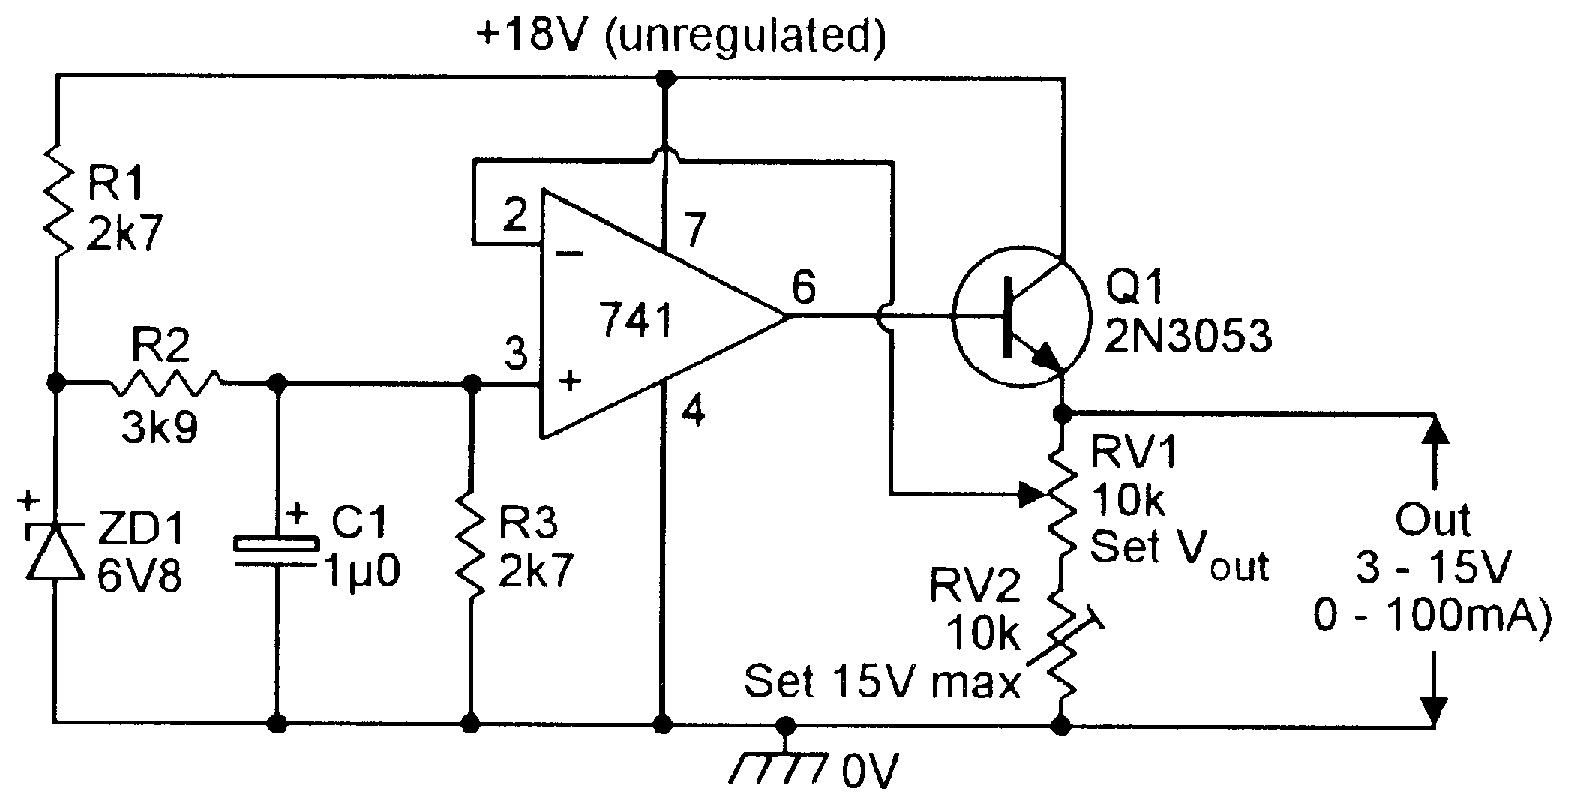 hight resolution of figure 20 3v to 15v 0 to 100 ma stabilized psu